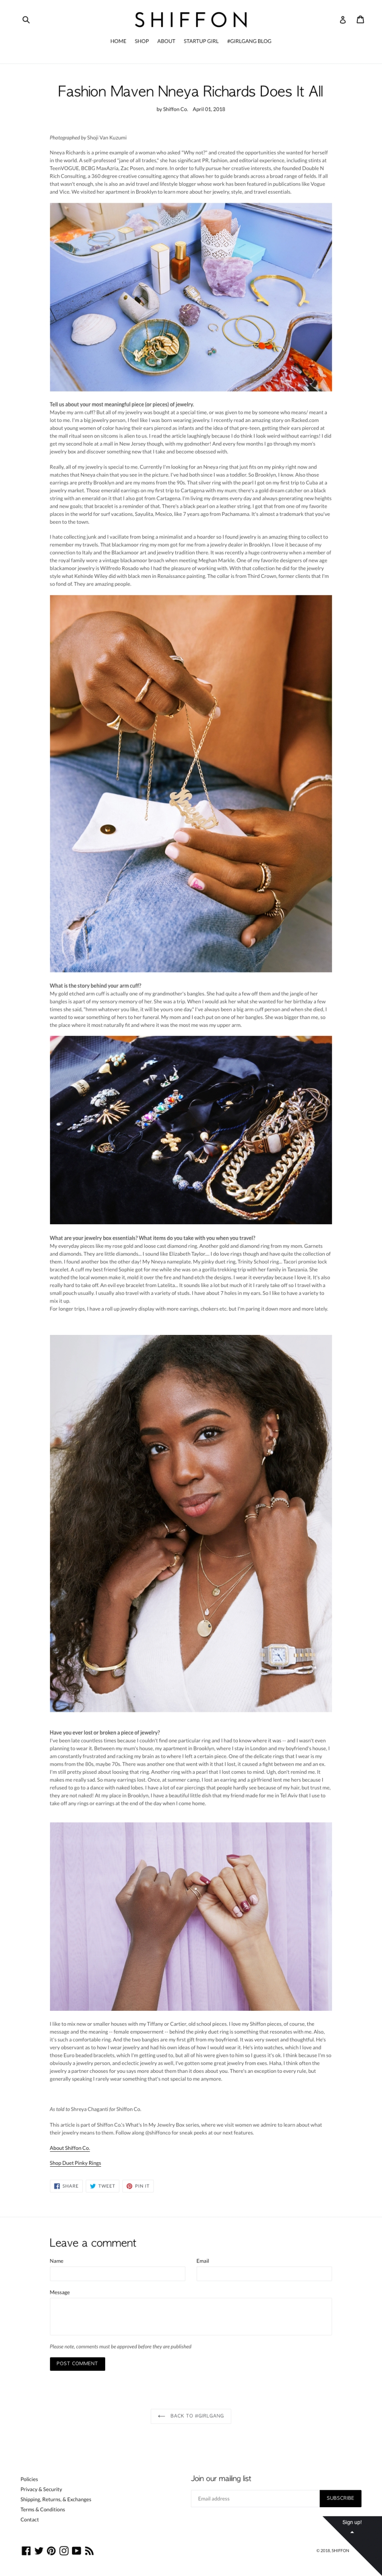 ShiffonCo.com - 4.1.18 - Fashion Maven Nneya Richards.jpg